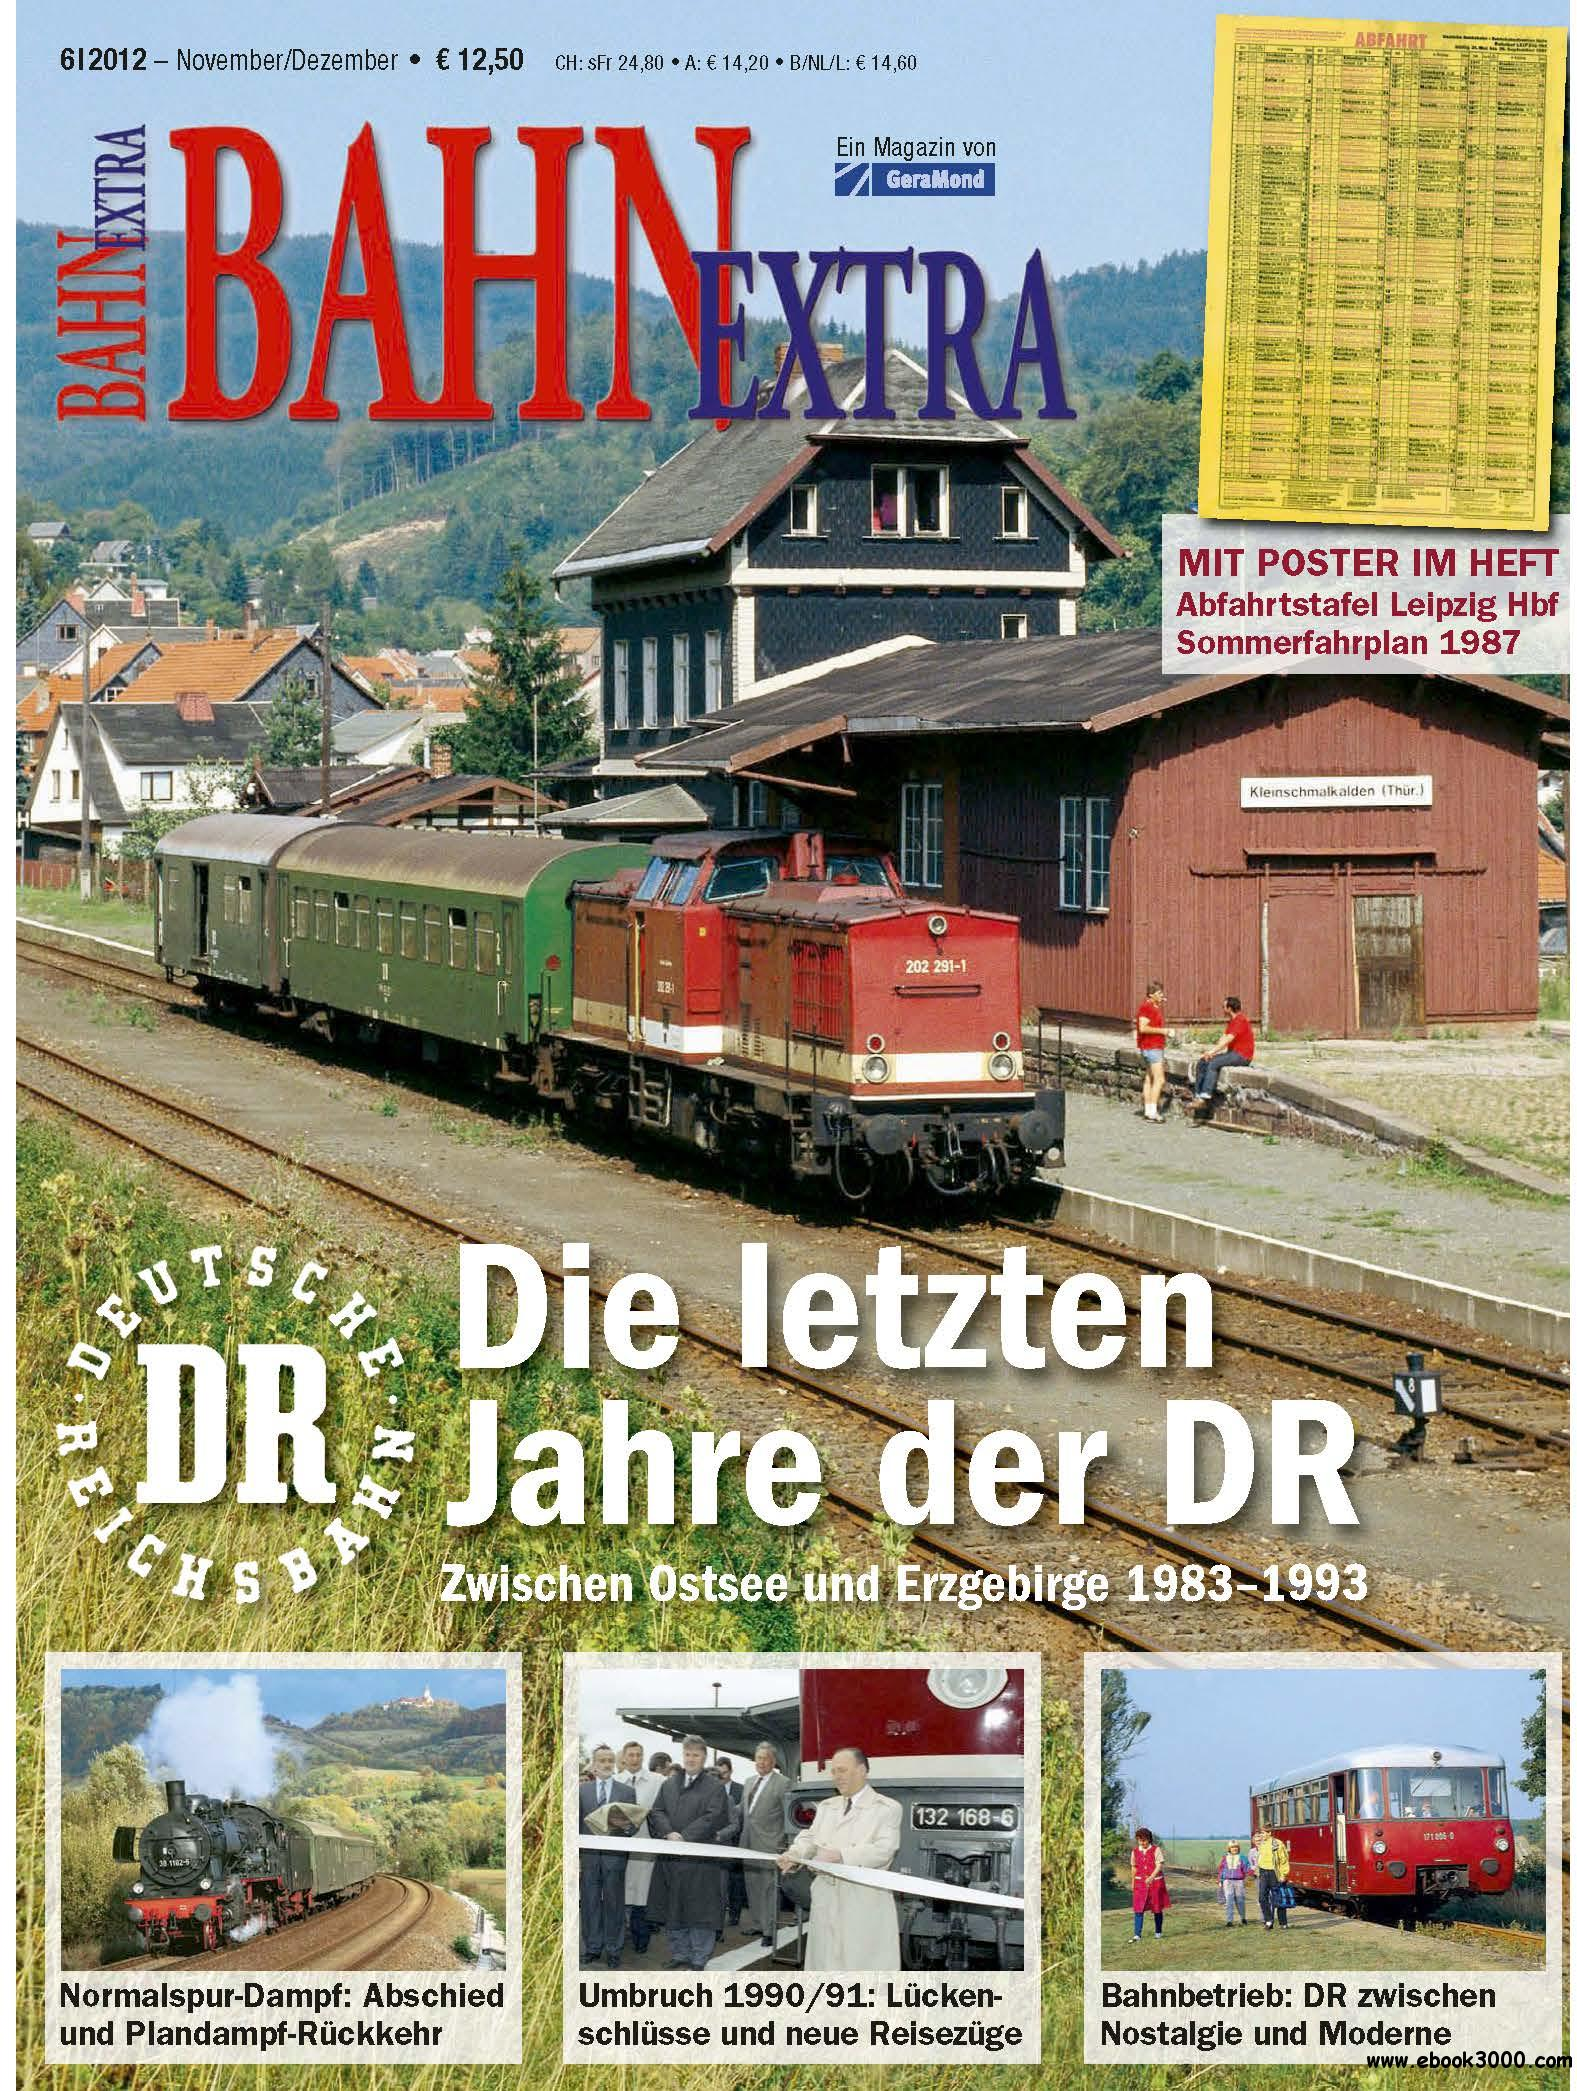 Bahn Extra November/Dezember 06/2012 free download